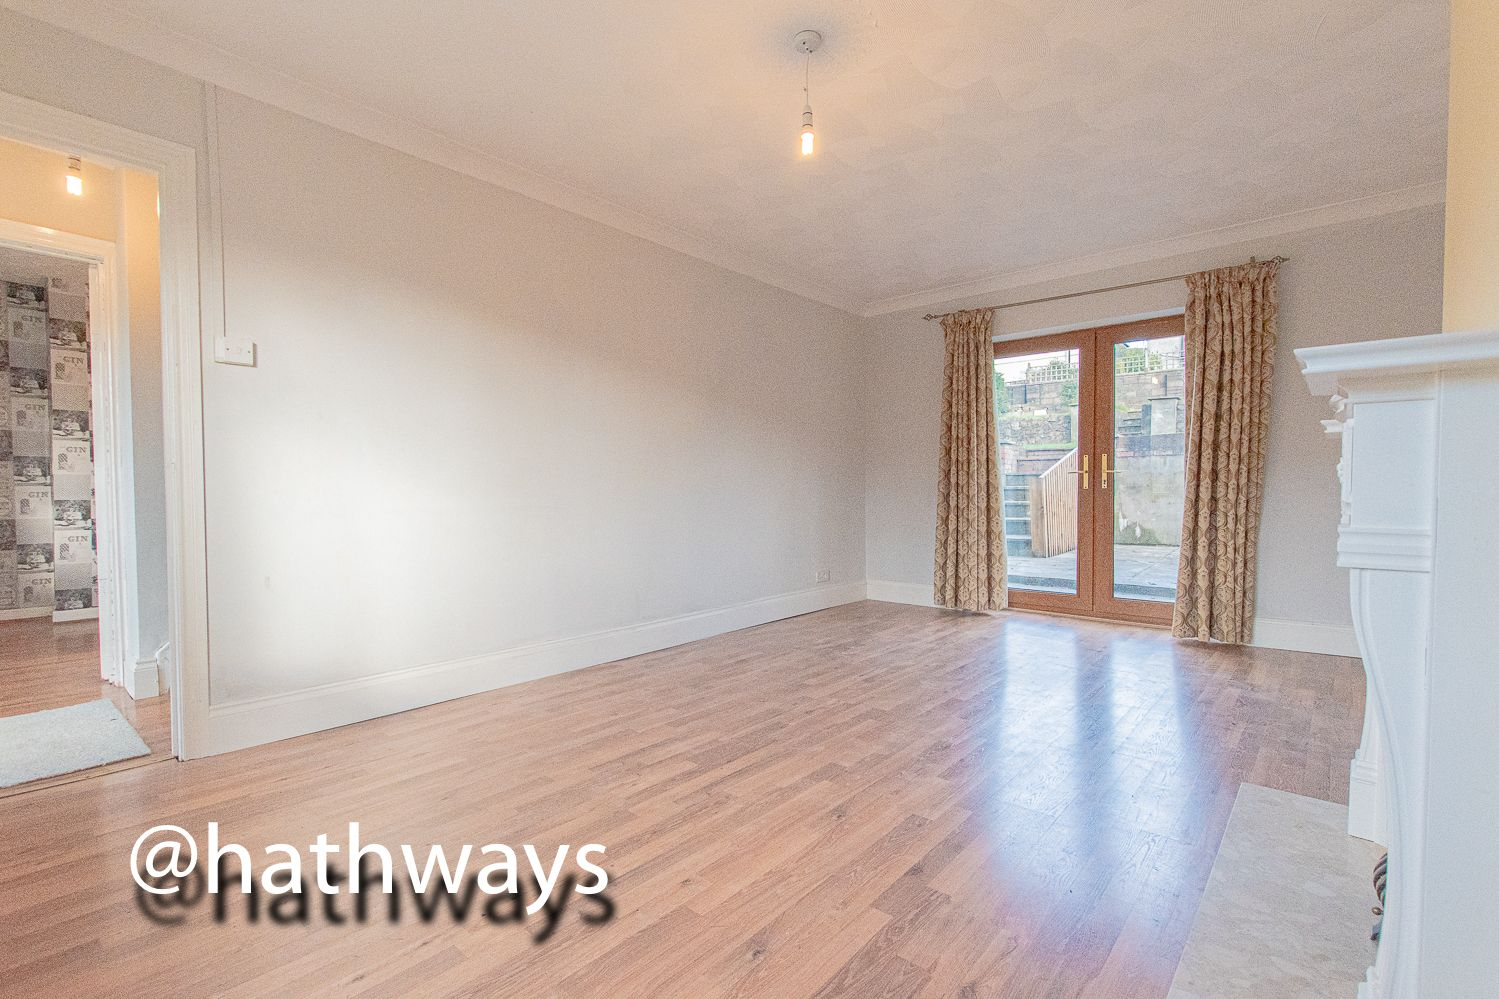 3 bed house for sale in Manor Road  - Property Image 5